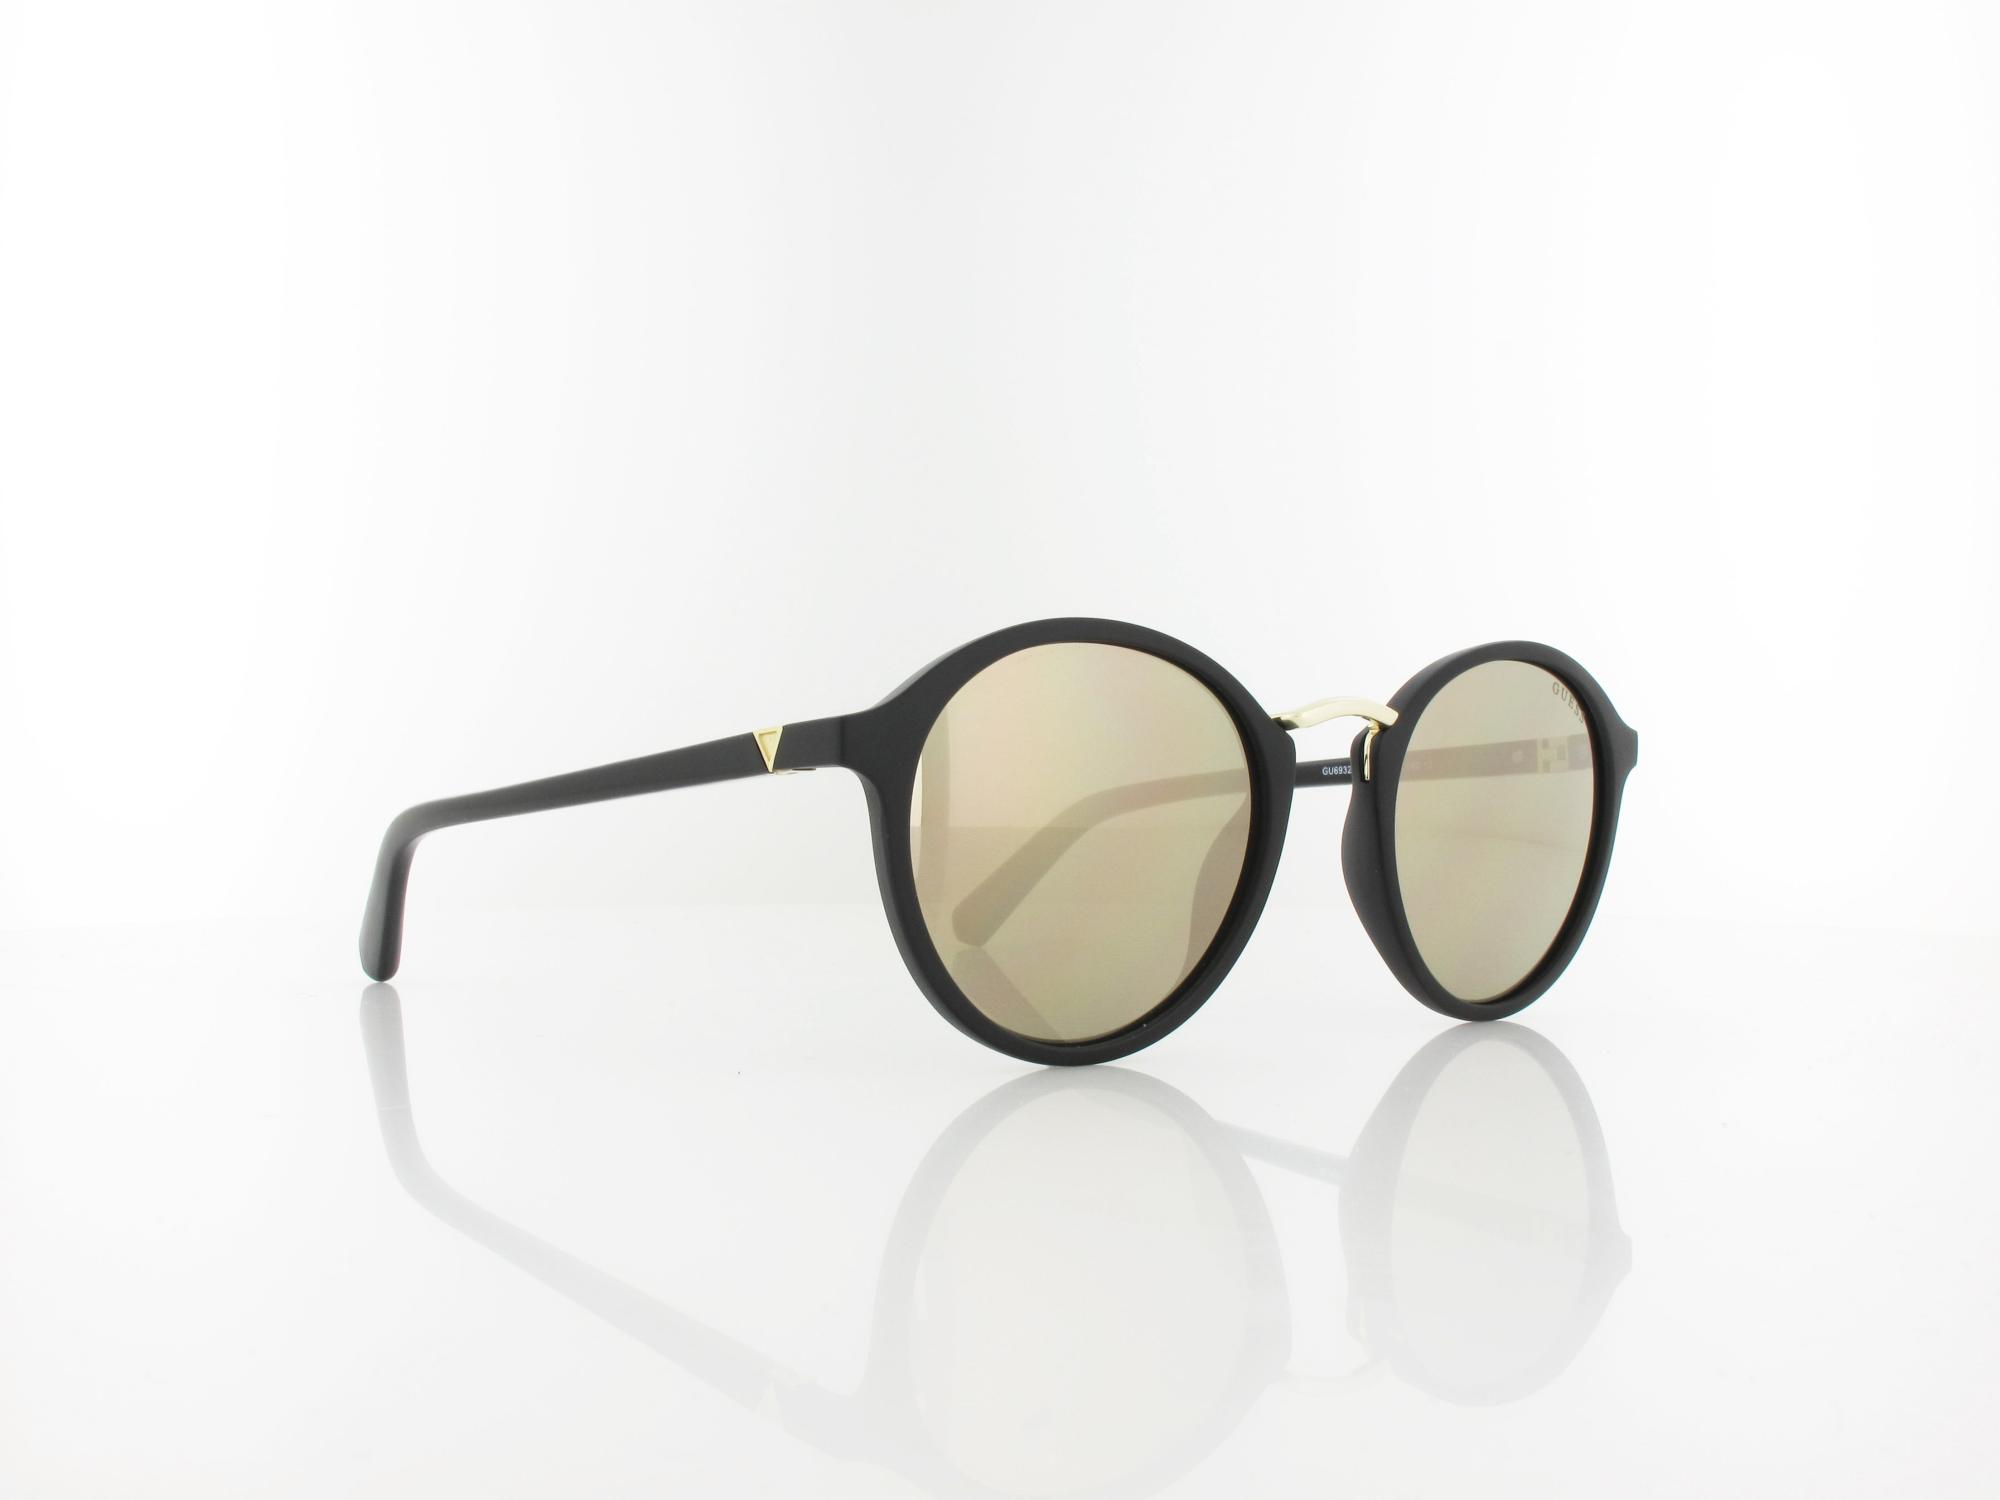 Guess | GU6932/S 02G 51 | matte black / brown mirror